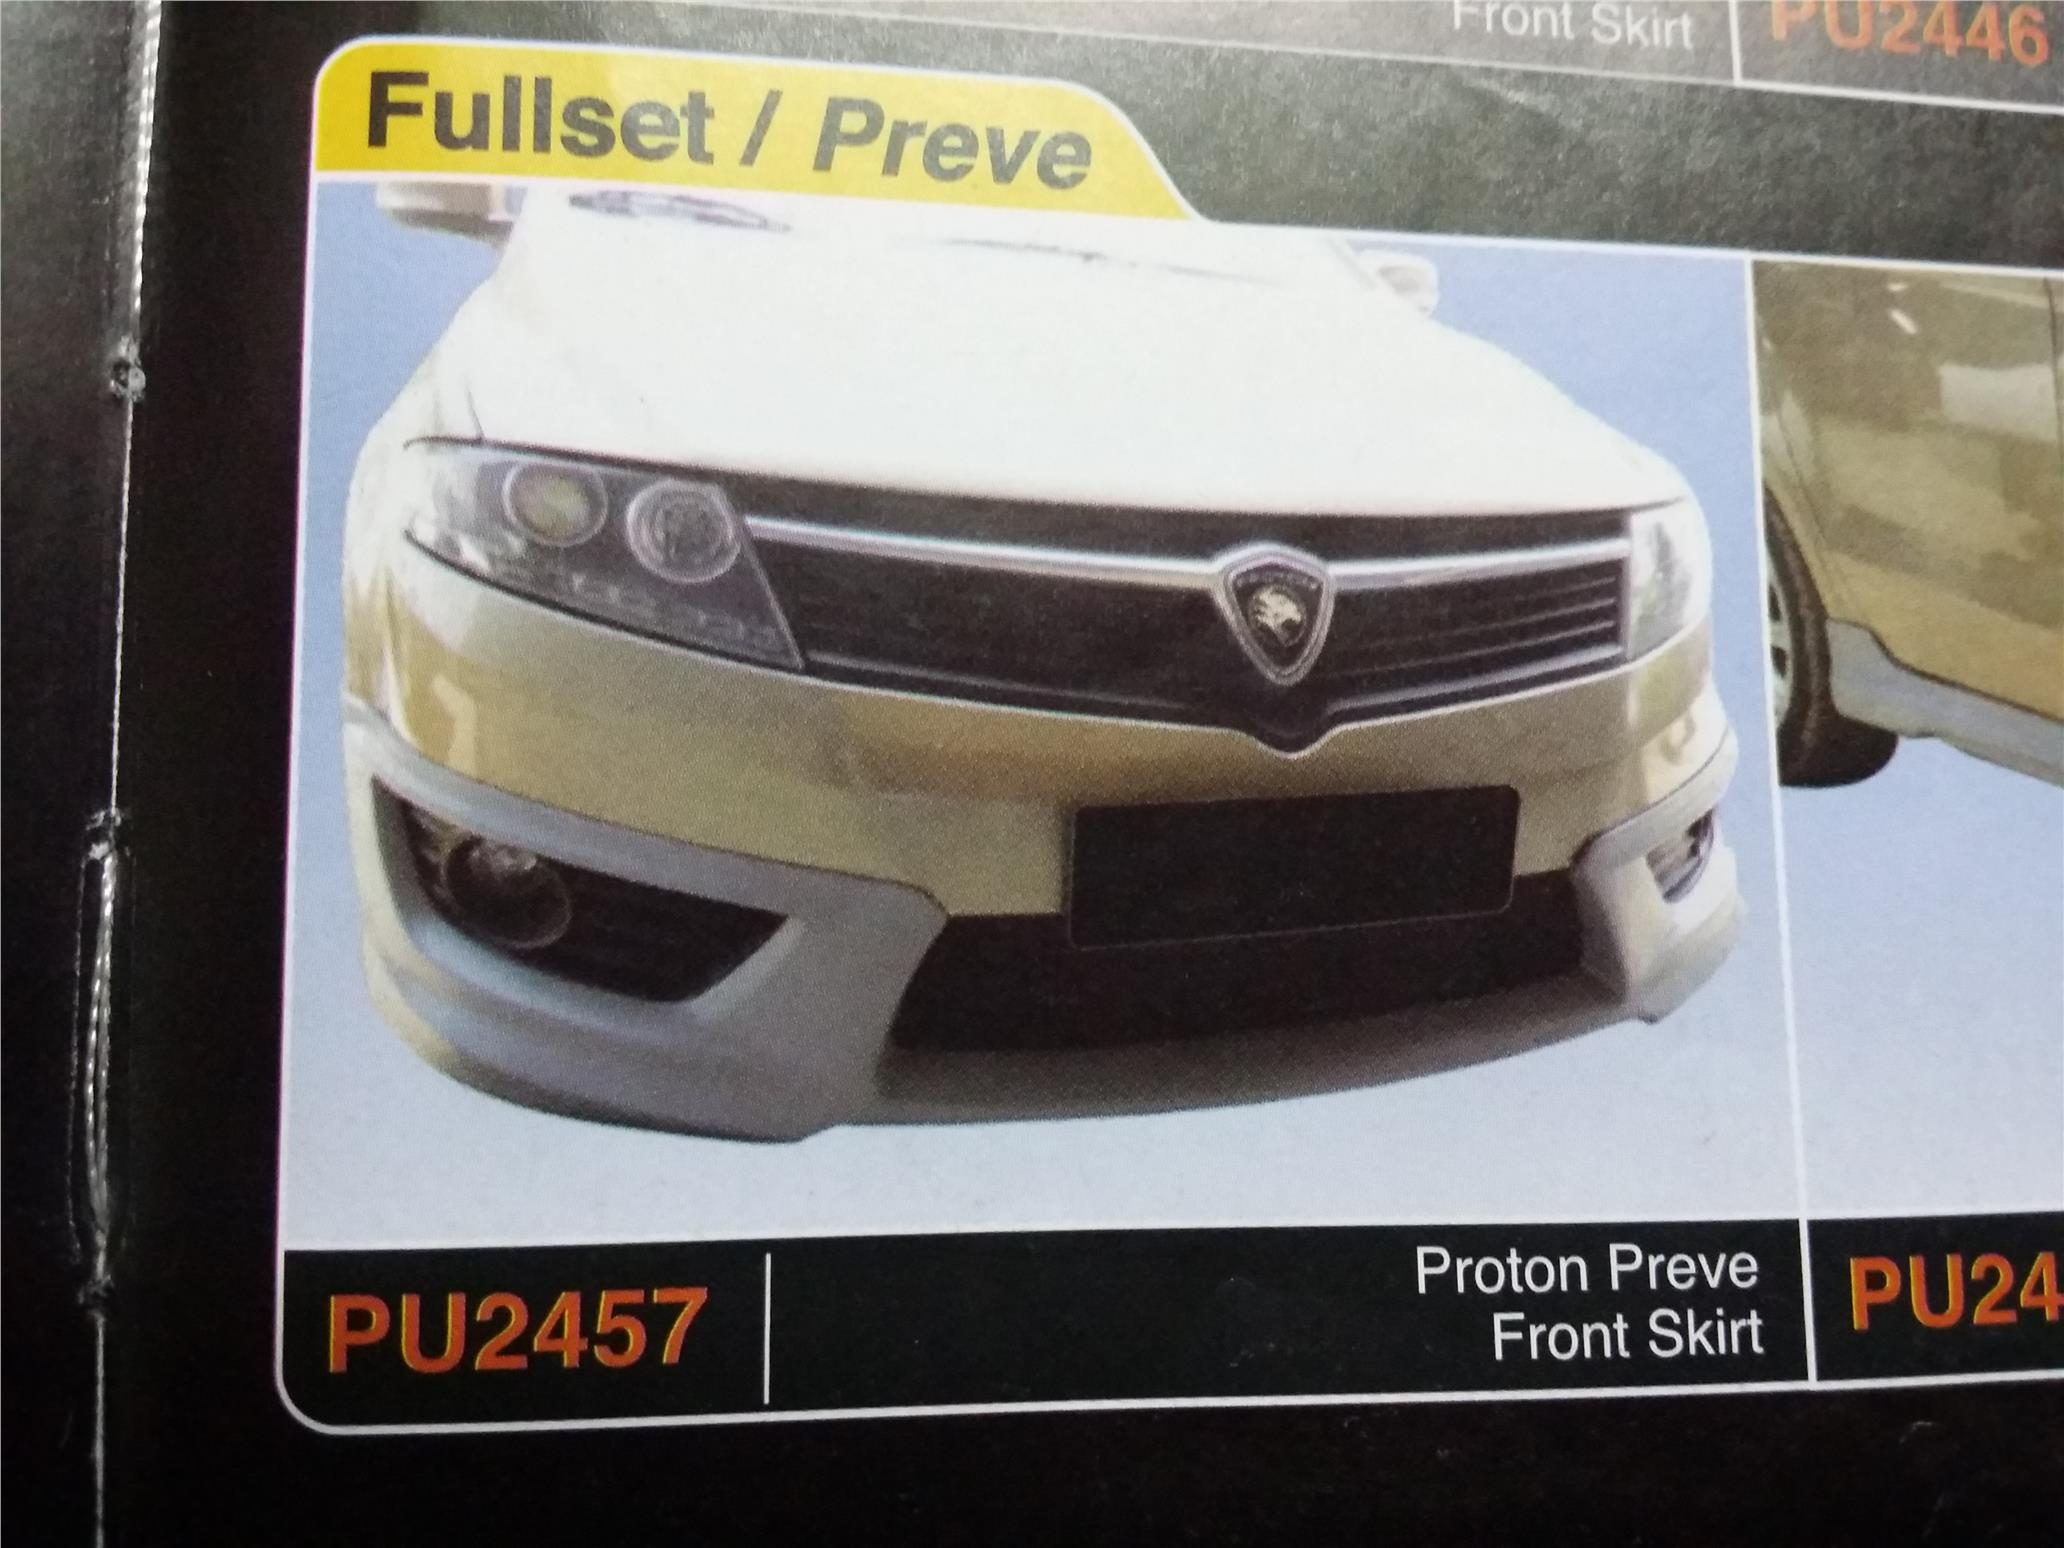 PROTON PREVE FRONT SKIRT PU2457